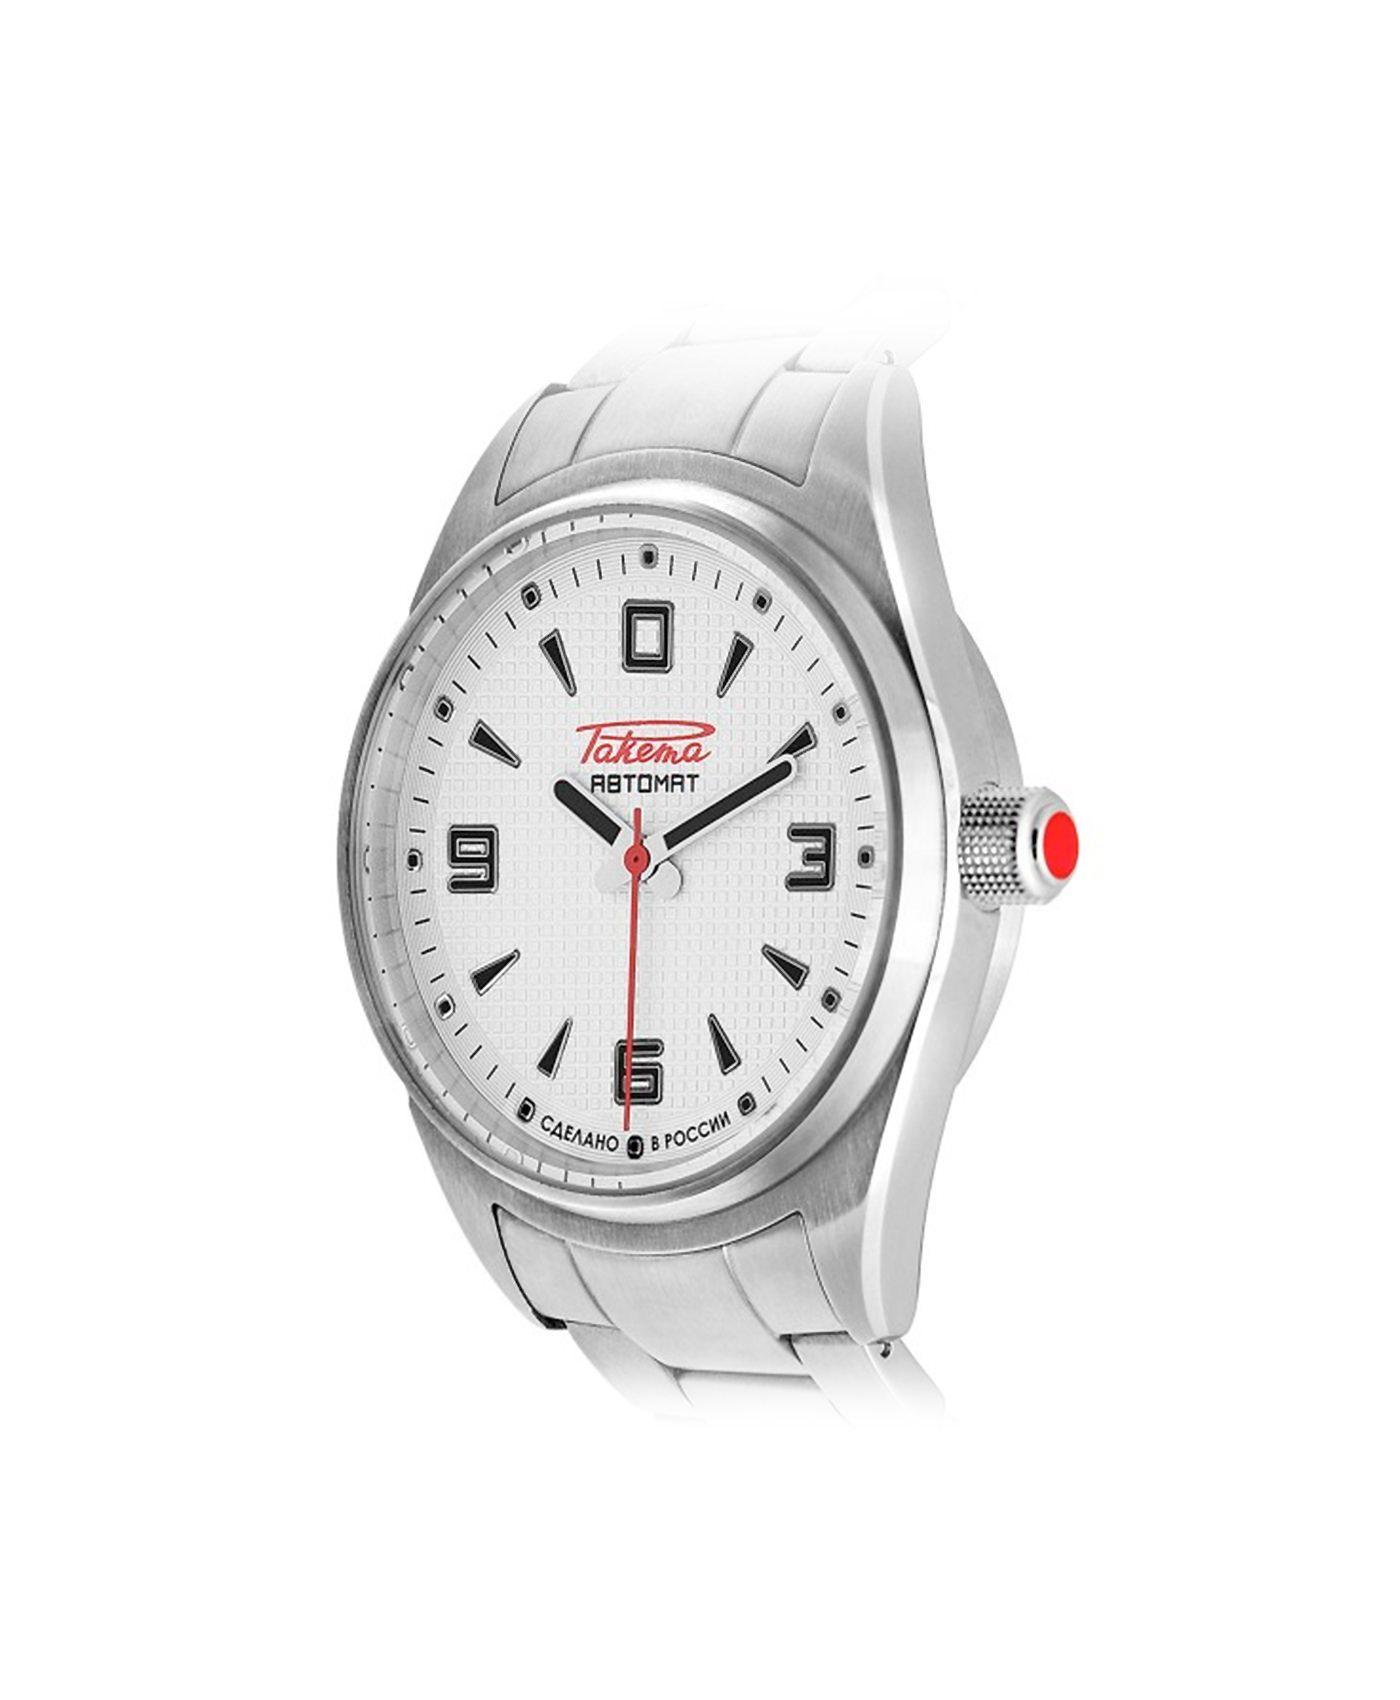 Raketa Watches 0154 side